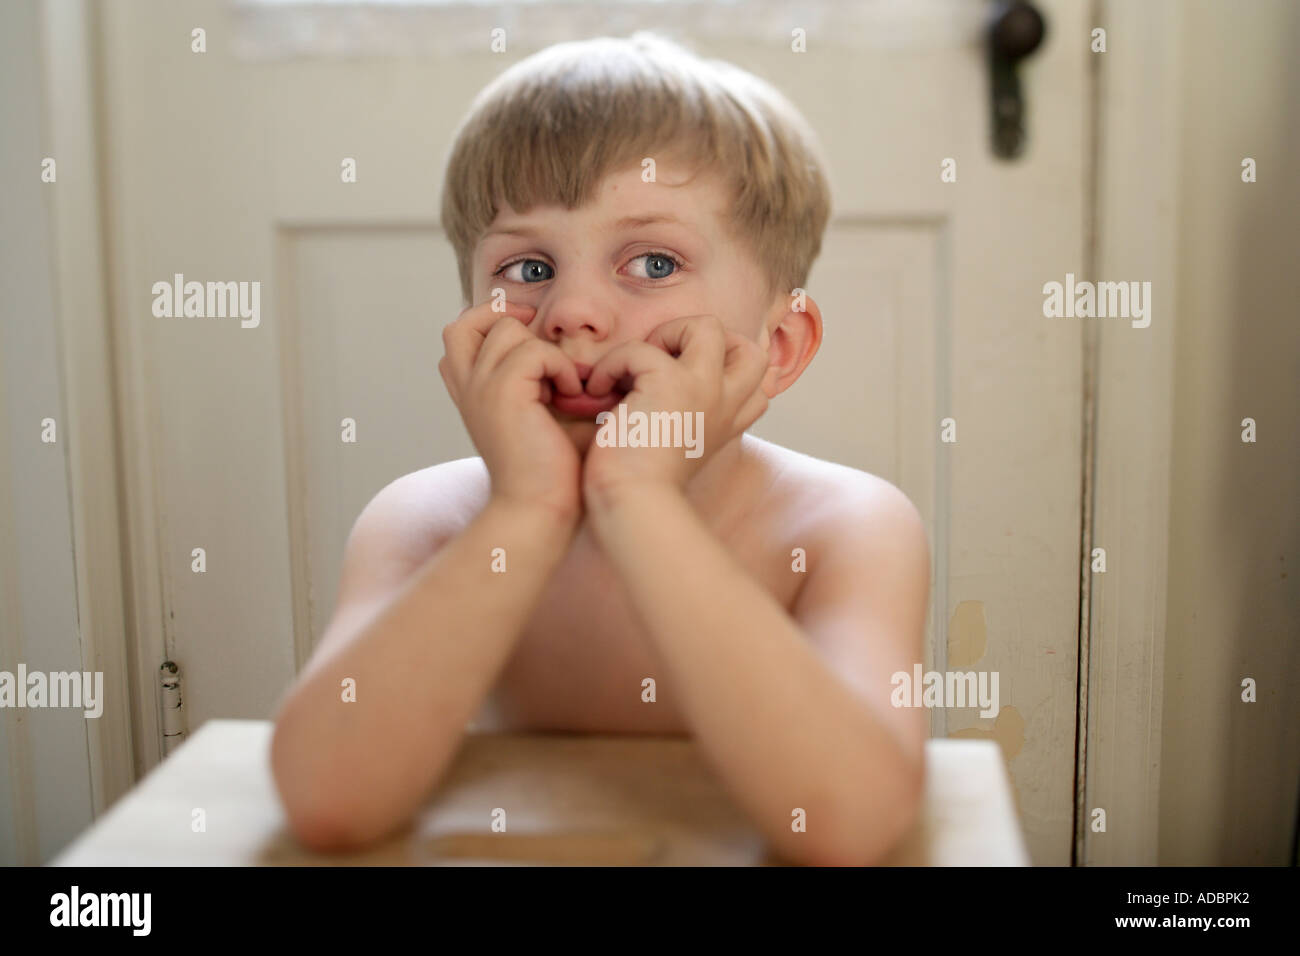 A bored Child sitting at small table looking unhappy and depressed - Stock Image